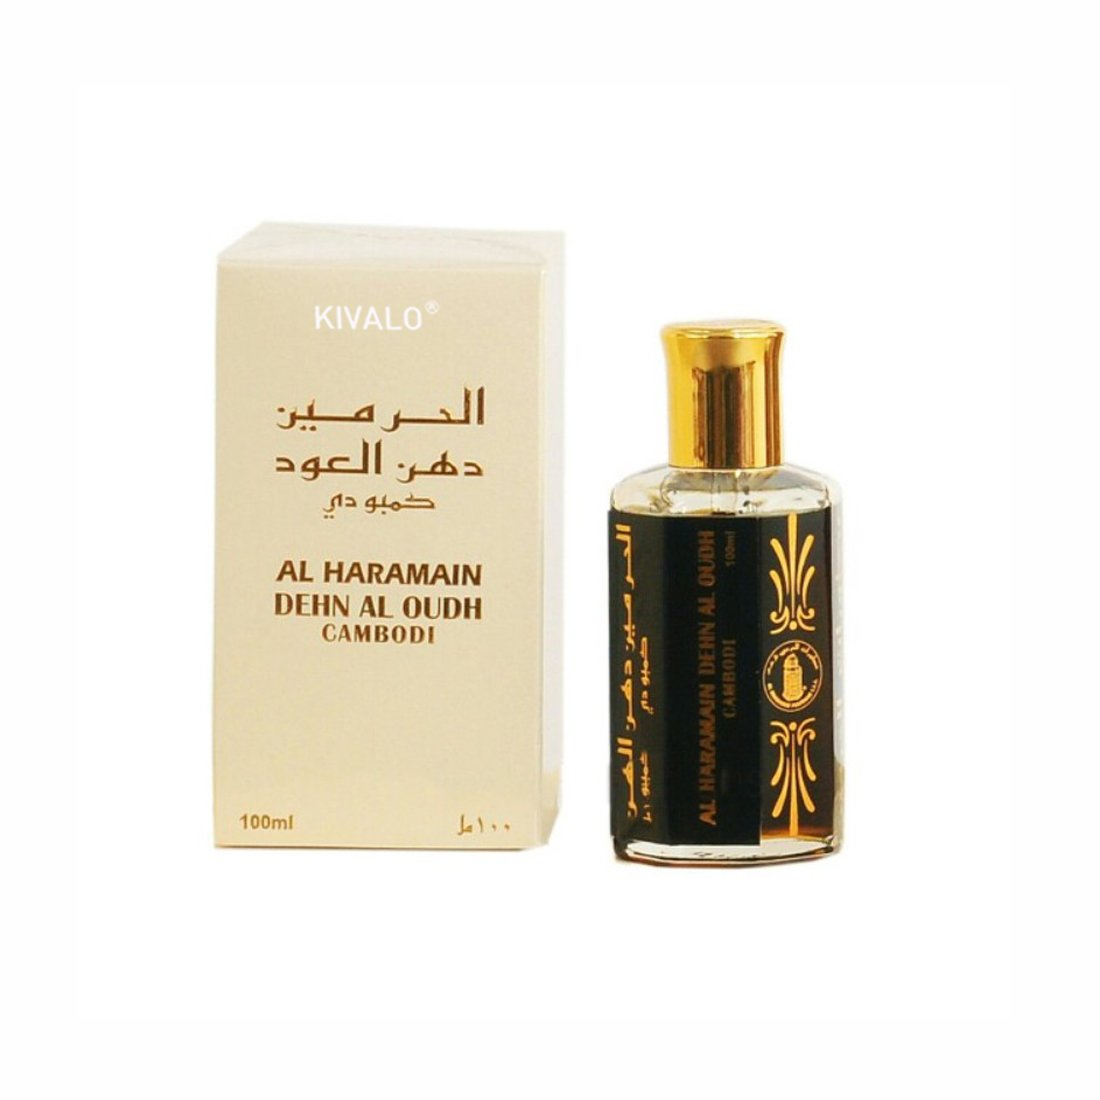 Al Haramain Dehn Al Oudh Cambodi Attar - 100 ml